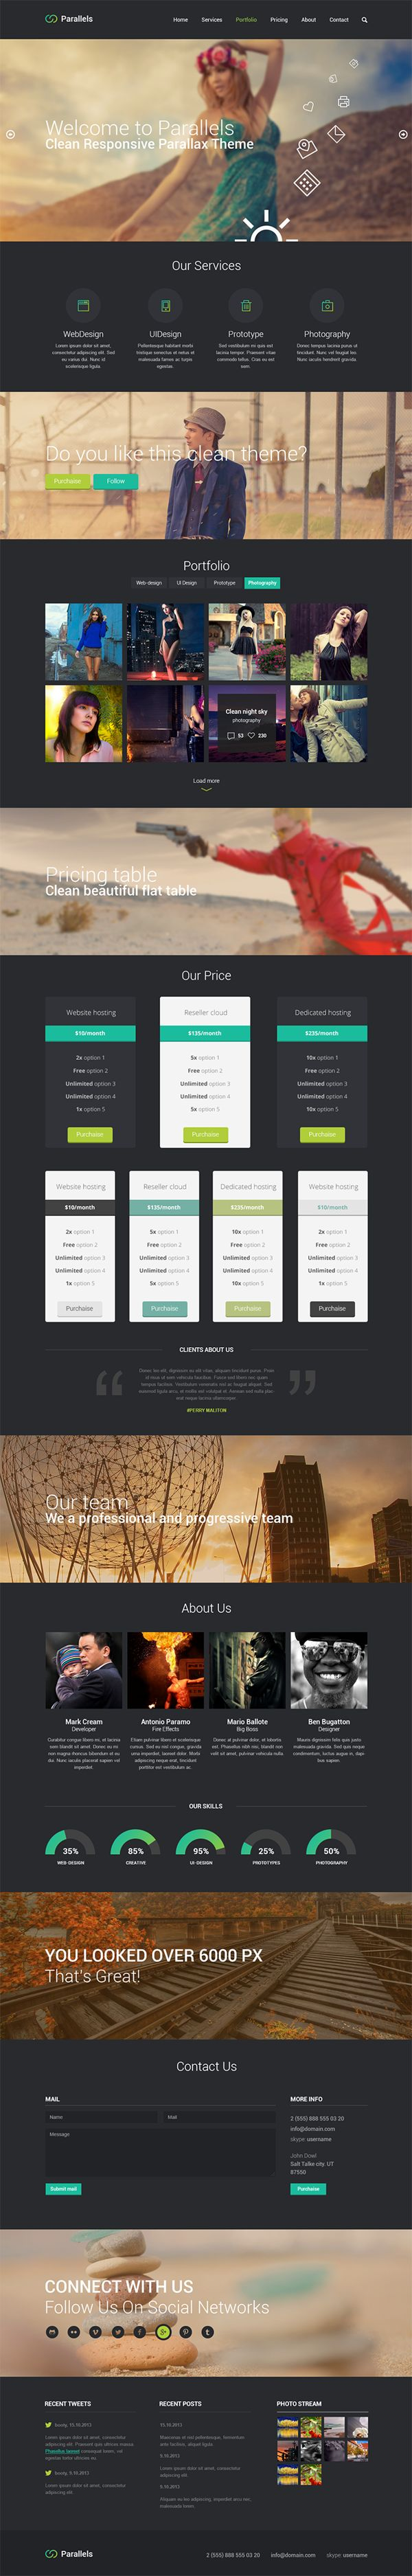 Free PSD Responsive Template/Dark https://www.behance.net/gallery/Free-PSD-Responsive-Template/14519733